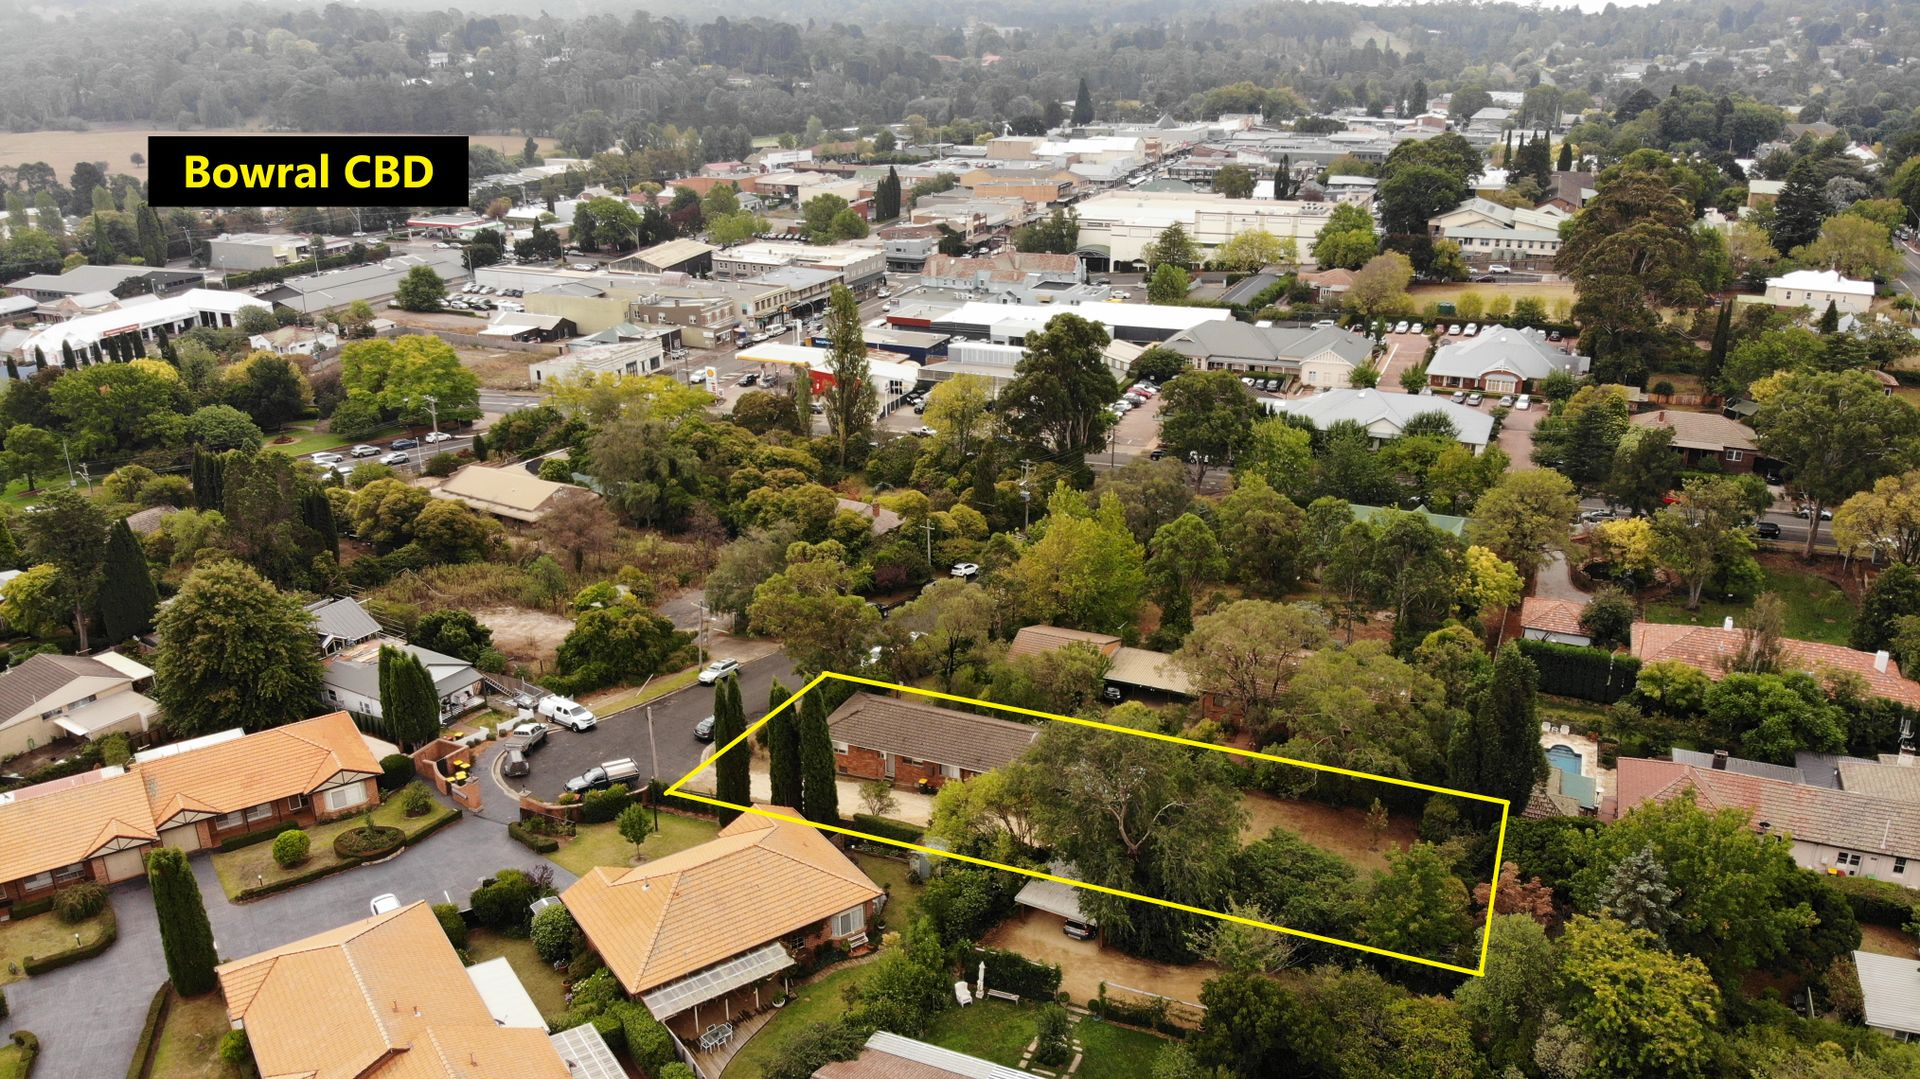 8 Holmhale Street, Bowral NSW 2576 - Block Of Units For